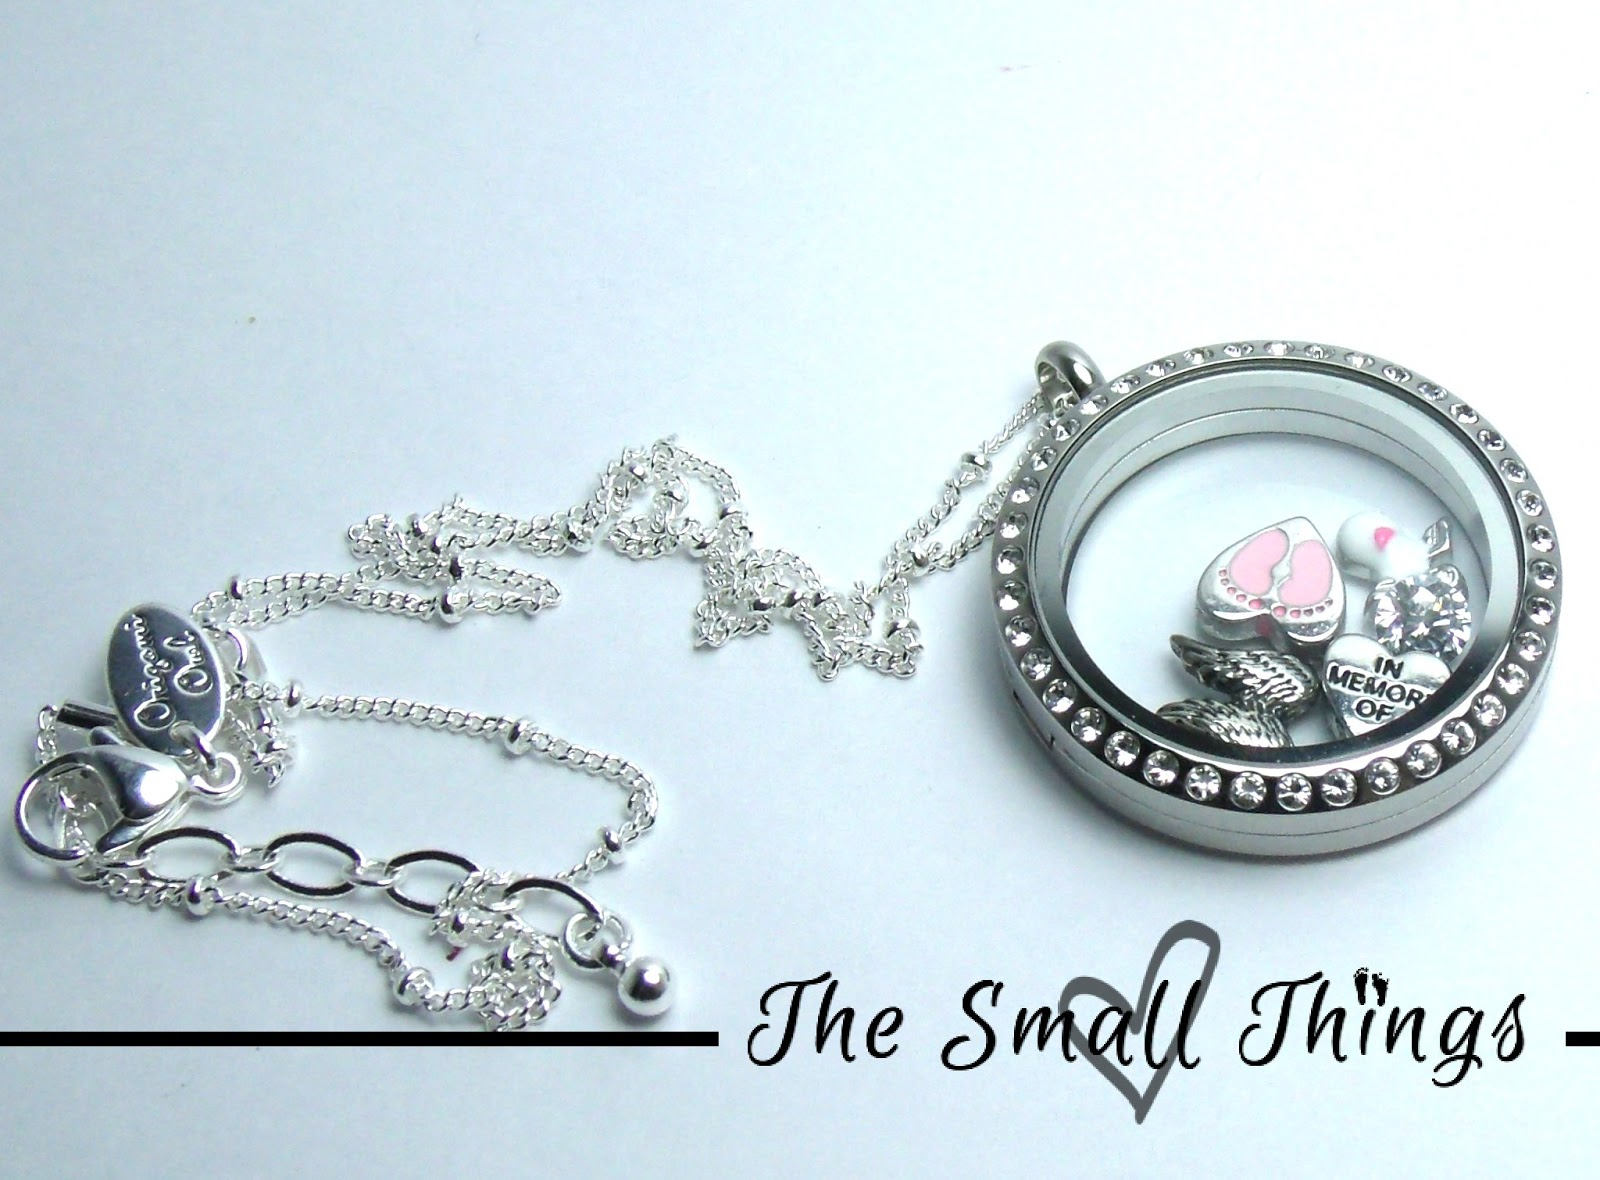 Origami owl living locket review and giveaway the small things the locket that i chose is the large silver locket with crystals it can be purchased for 28 the chain that i chose was the silver ball station chain jeuxipadfo Image collections